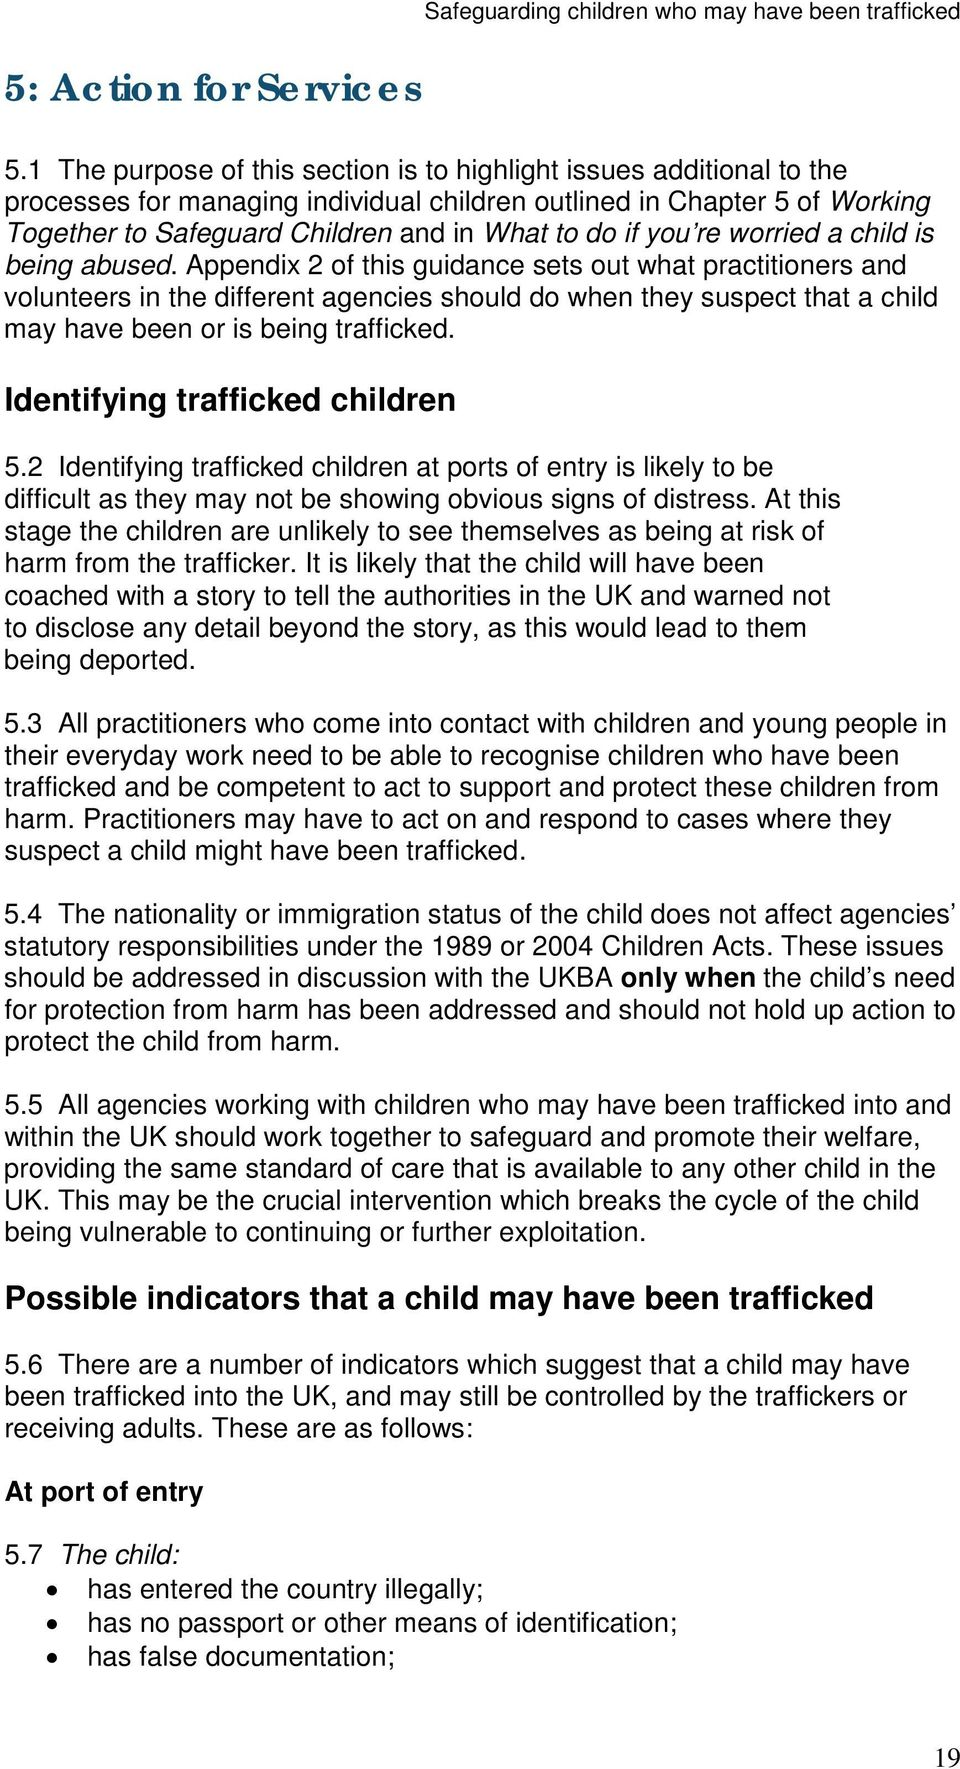 you re worried a child is being abused.